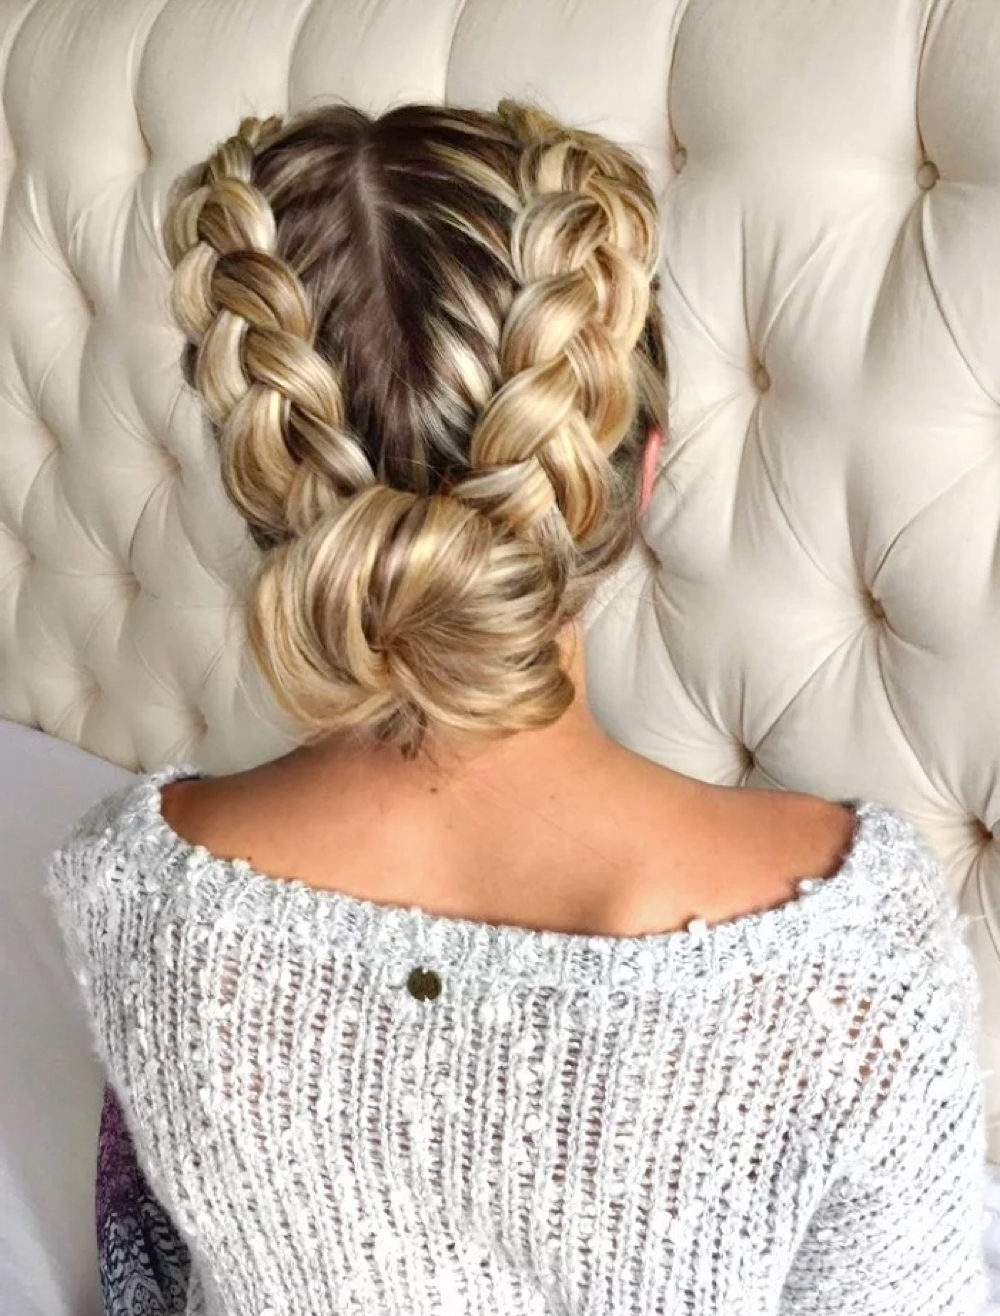 28 Gorgeous Braided Updo Ideas For 2018 With Regard To Recent Unique Braided Up Do Hairstyles (View 3 of 15)